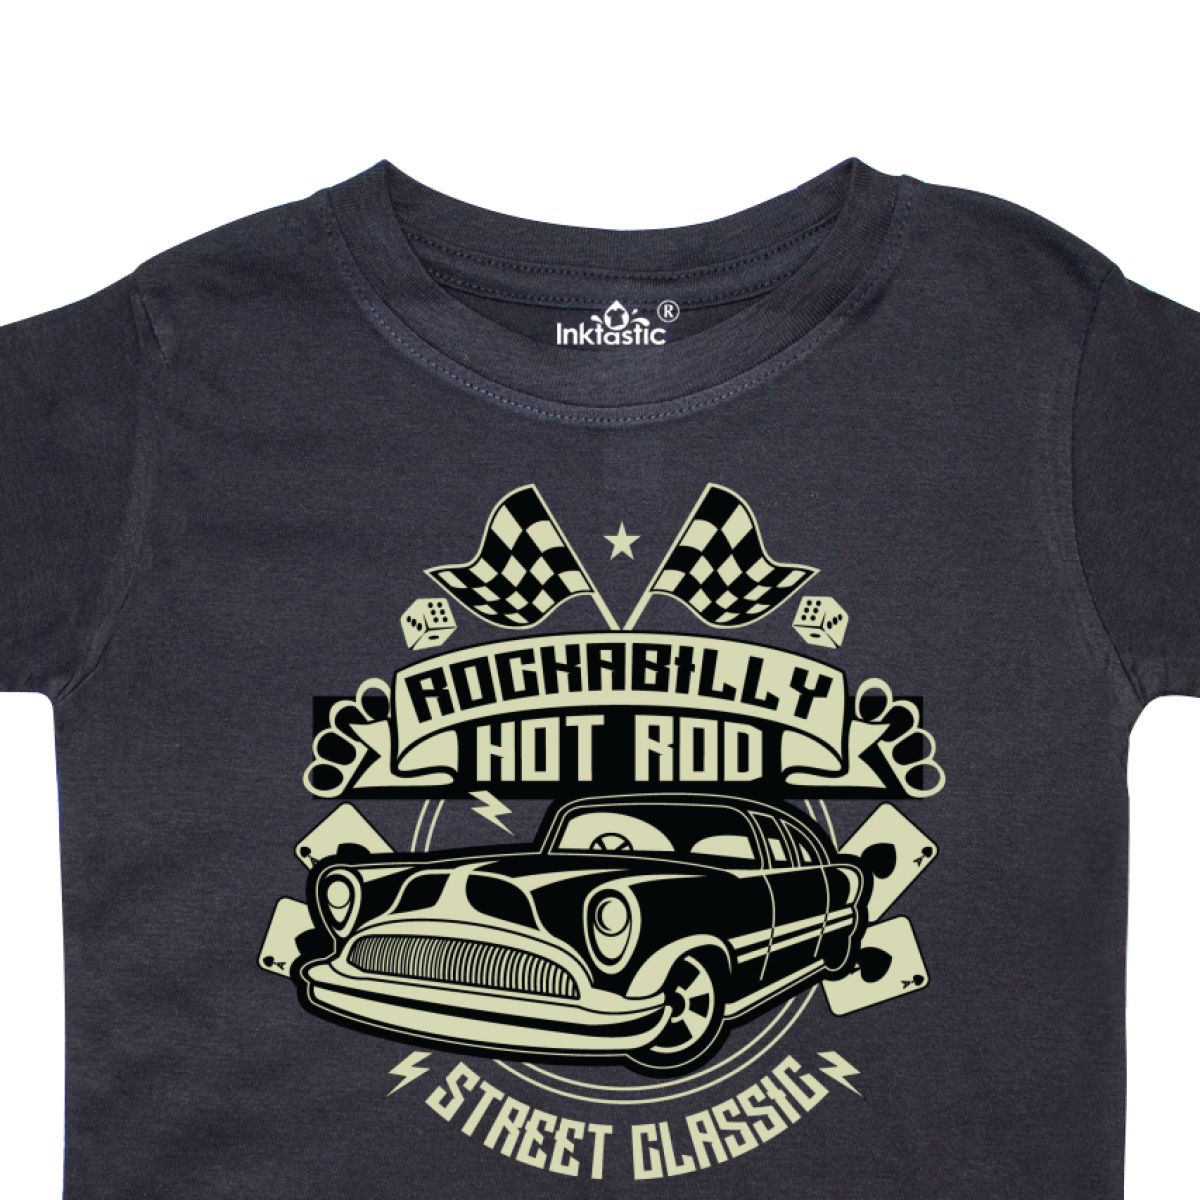 Inktastic-Rockabilly-Hotrod-Toddler-T-Shirt-Hot-Rod-Vintage-Car-Racing-Street thumbnail 4